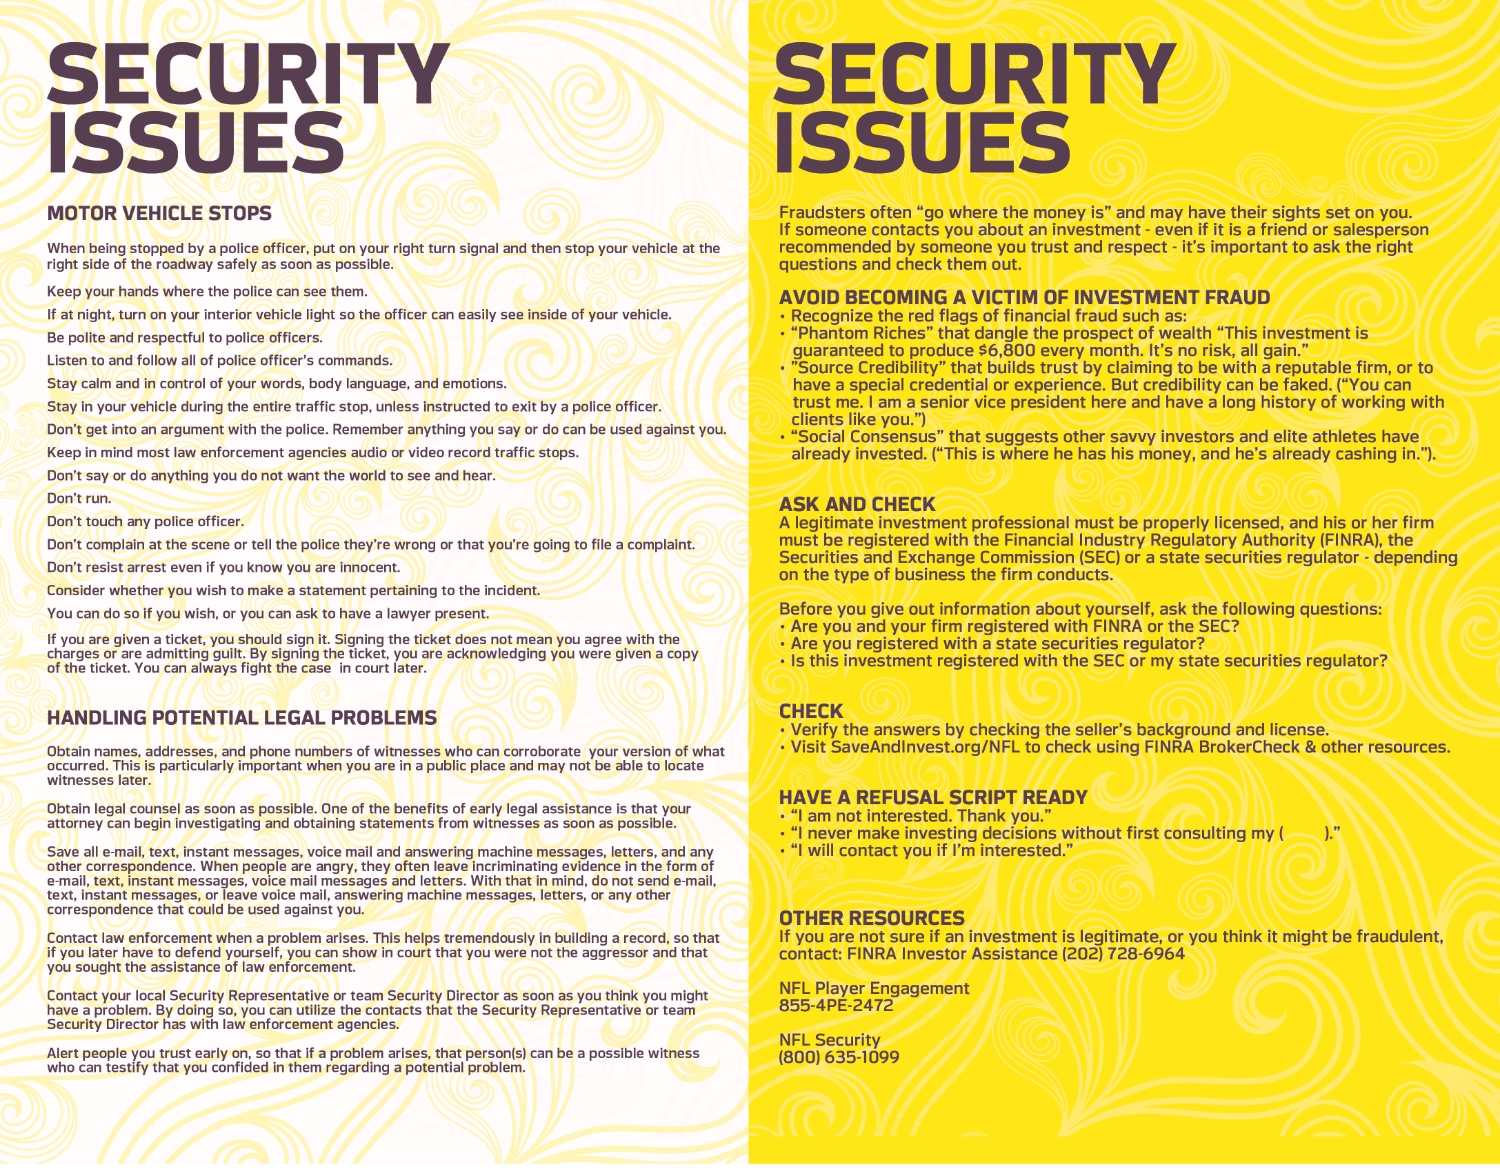 SECURITY ISSUES pages 3 and 4.jpg